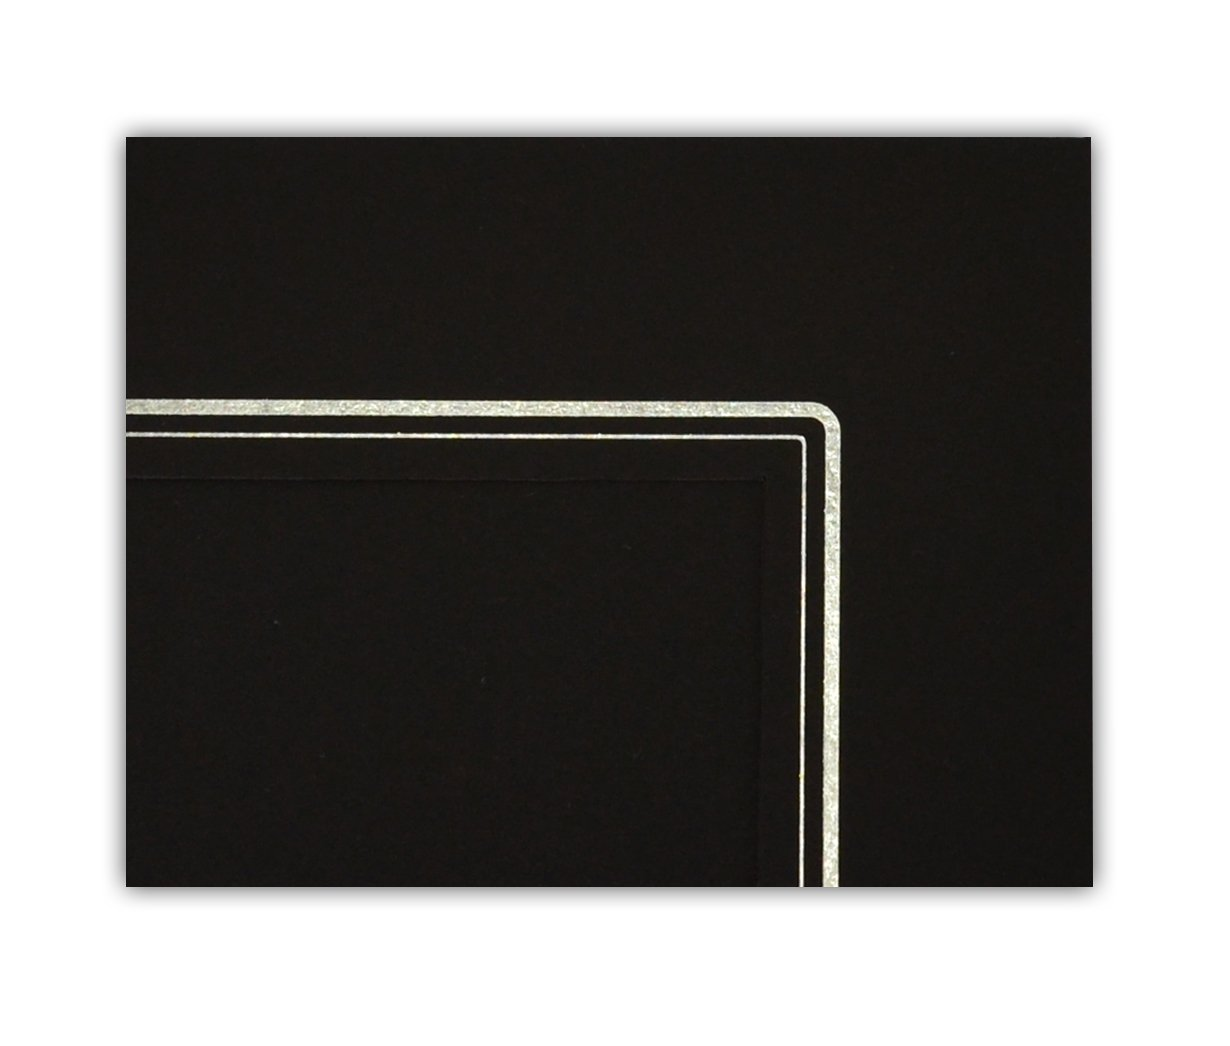 Golden State Art, Cardboard Photo Folder for a 4x6 Photo (Pack of 100) Black Color by Golden State Art (Image #5)